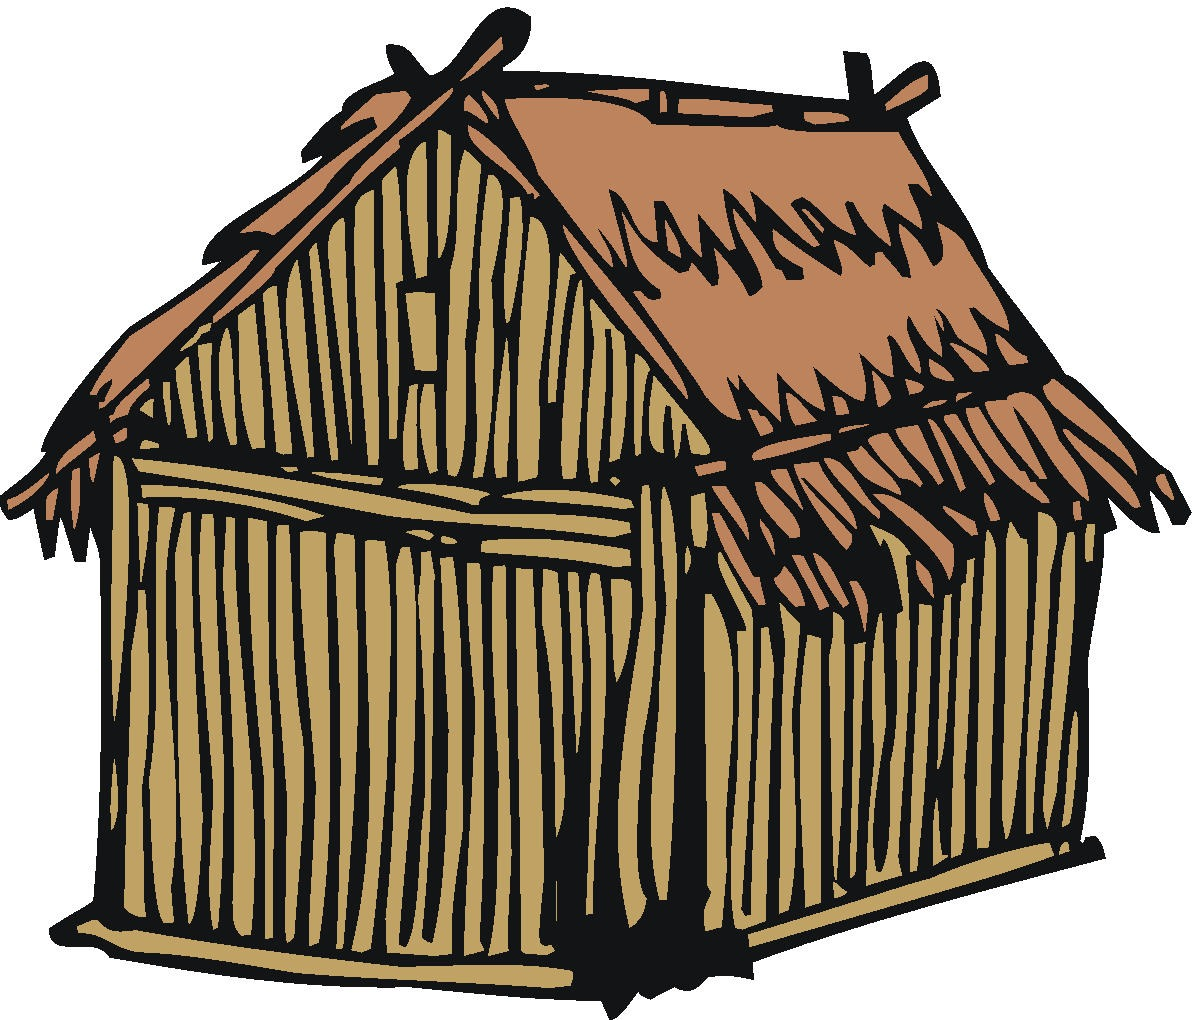 Clipart hut clipart transparent download Hut Cliparts - Cliparts Zone clipart transparent download